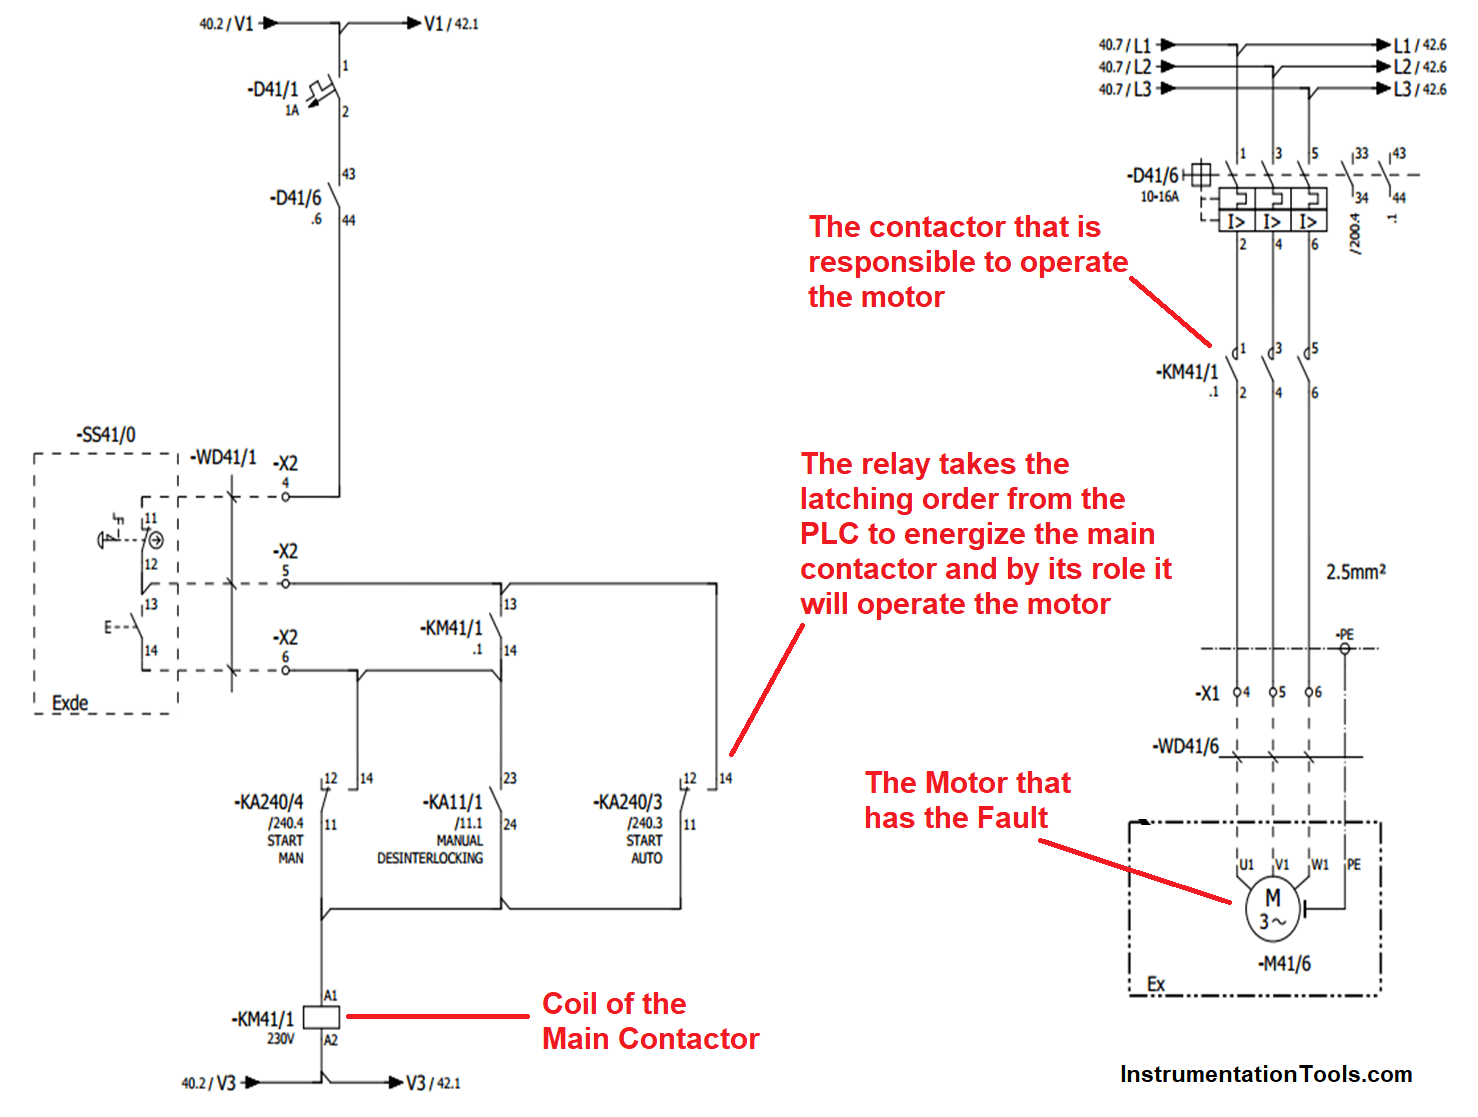 How to troubleshoot the PLC Hardware faults